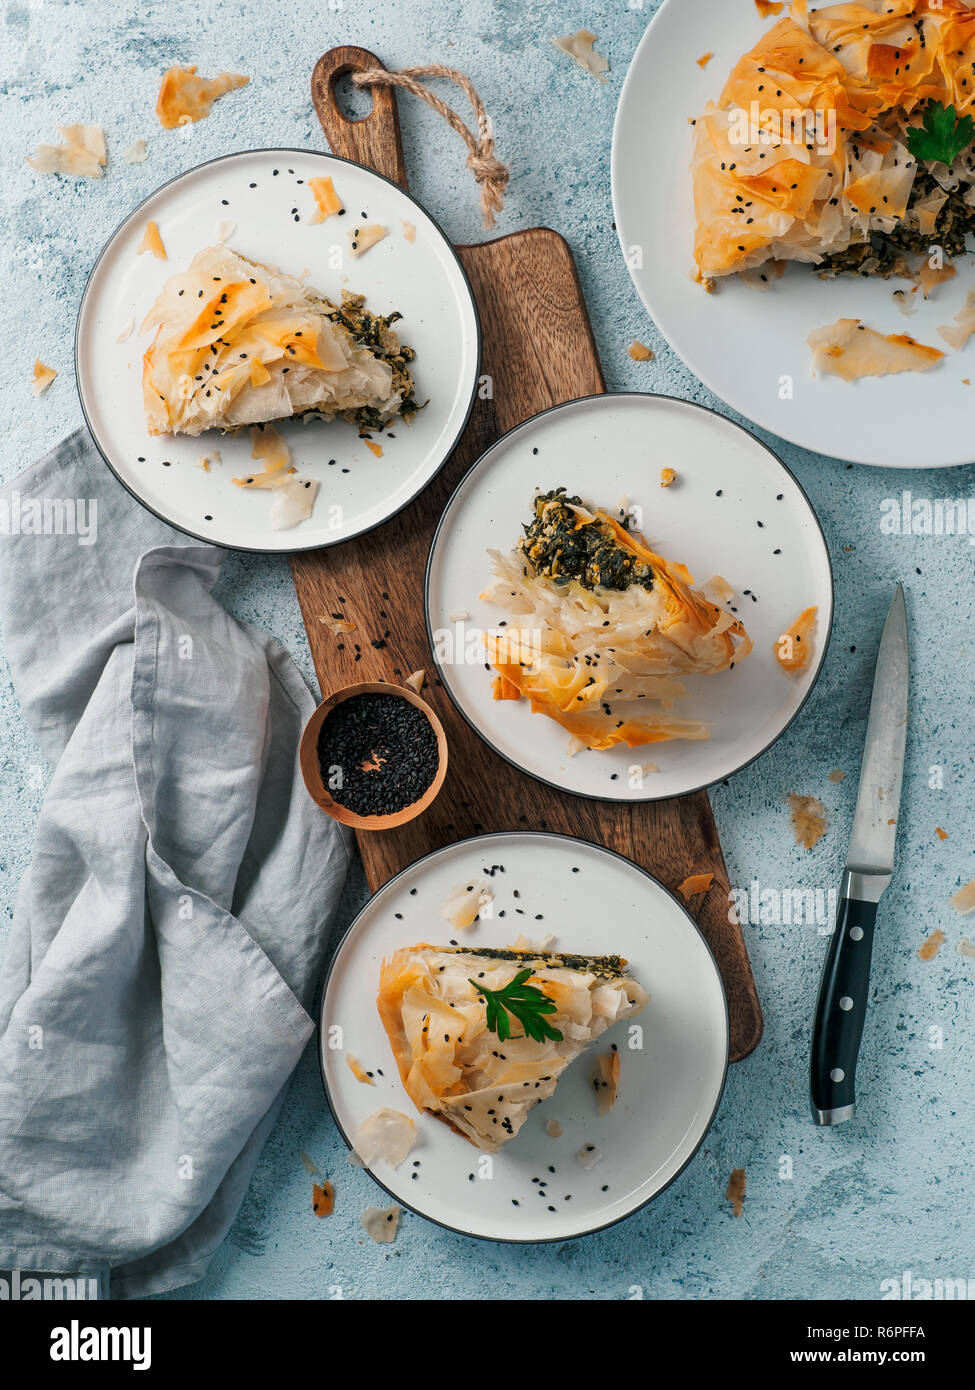 Greek Pie Spanakopita On Gray Background Ideas And Recipes For Vegetarian Or Vegan Spanakopita Spinach Pie From Fillo Pastry Slices Pie On Plates Copy Space Top View Or Flat Lay Vertical Stock